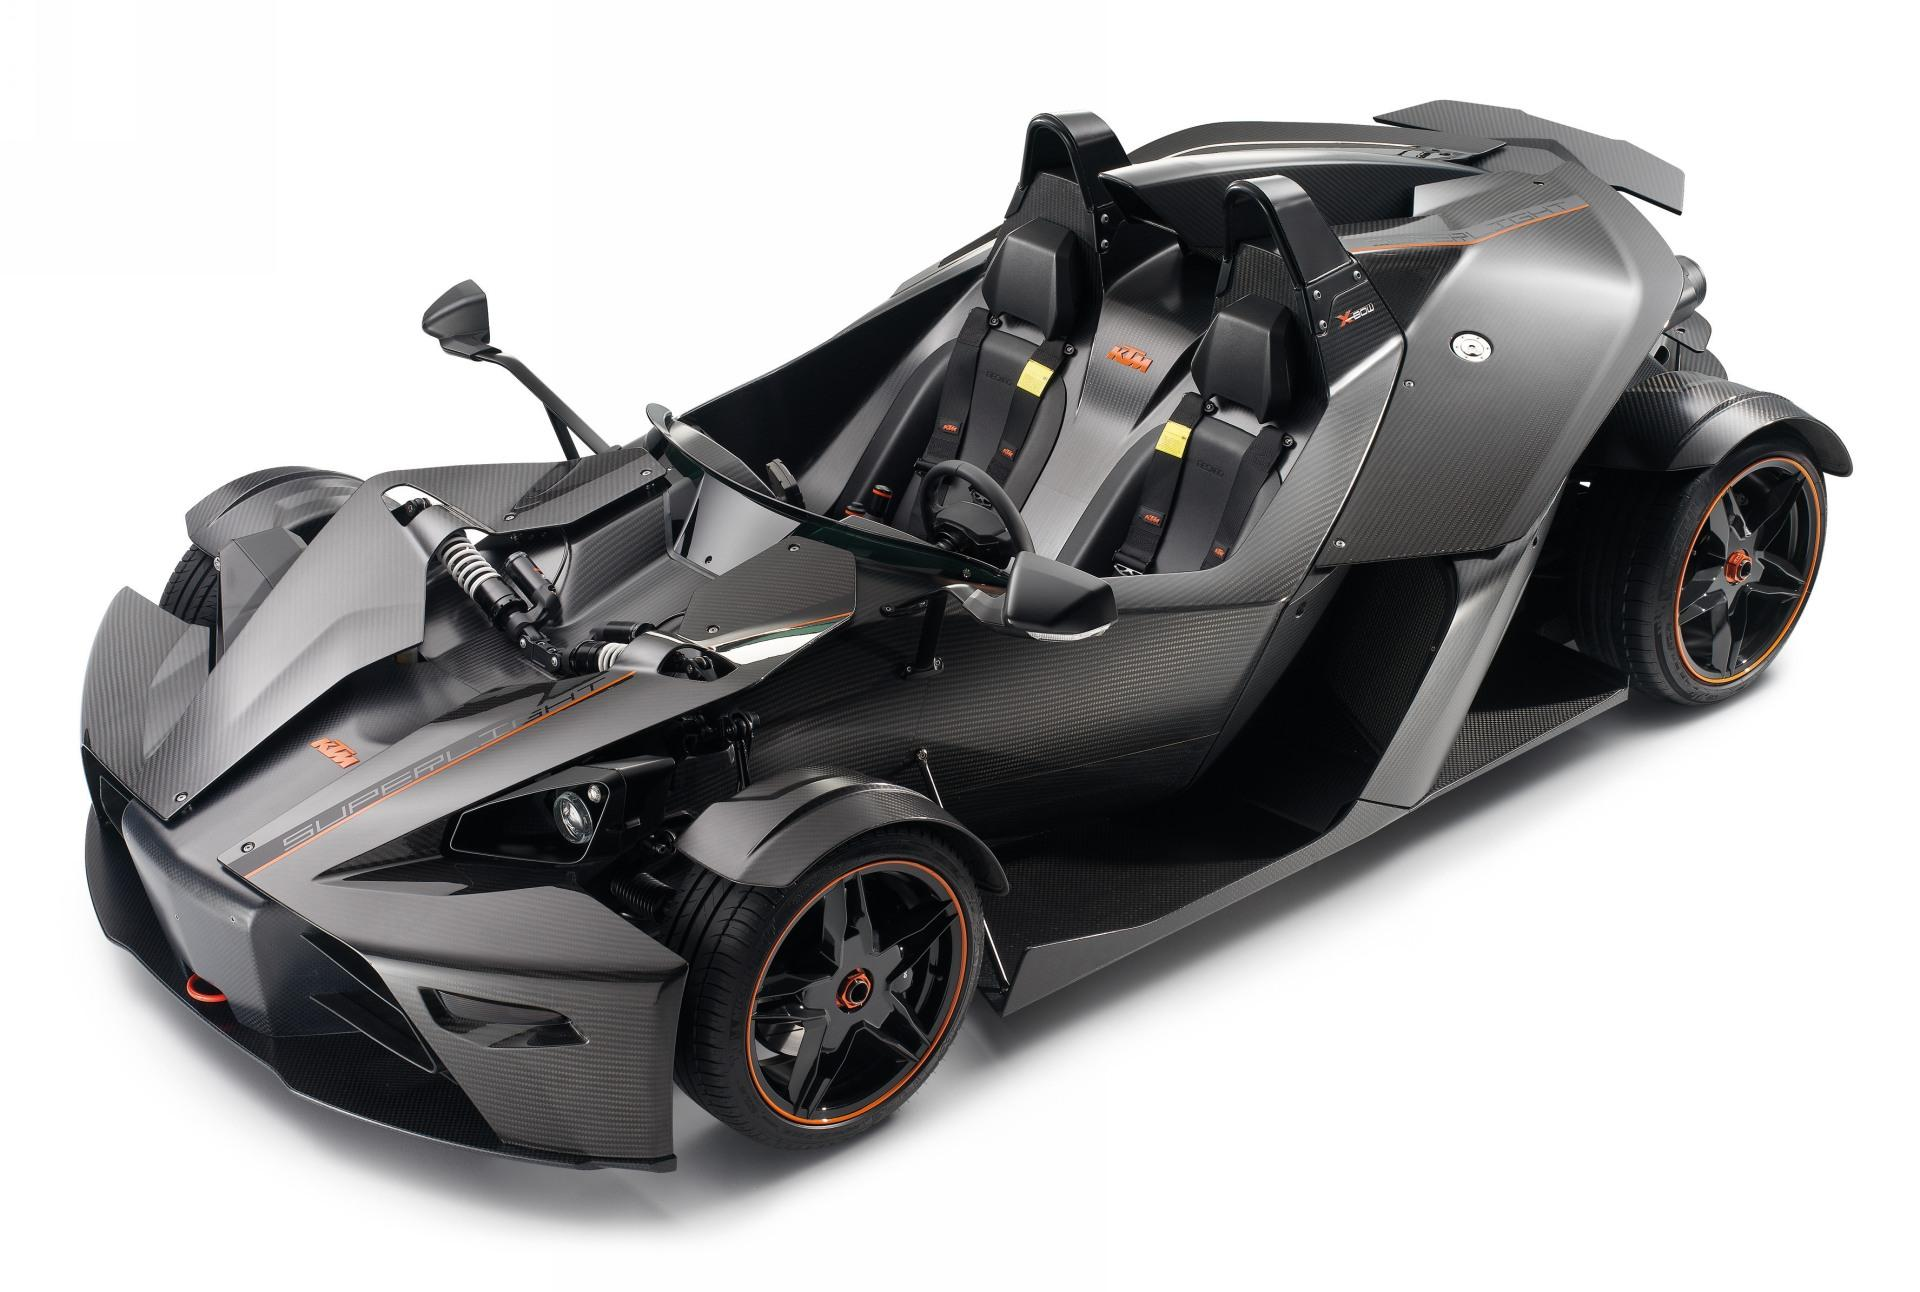 Ktm X-Bow Price >> 2009 KTM X-BOW Superlight - conceptcarz.com